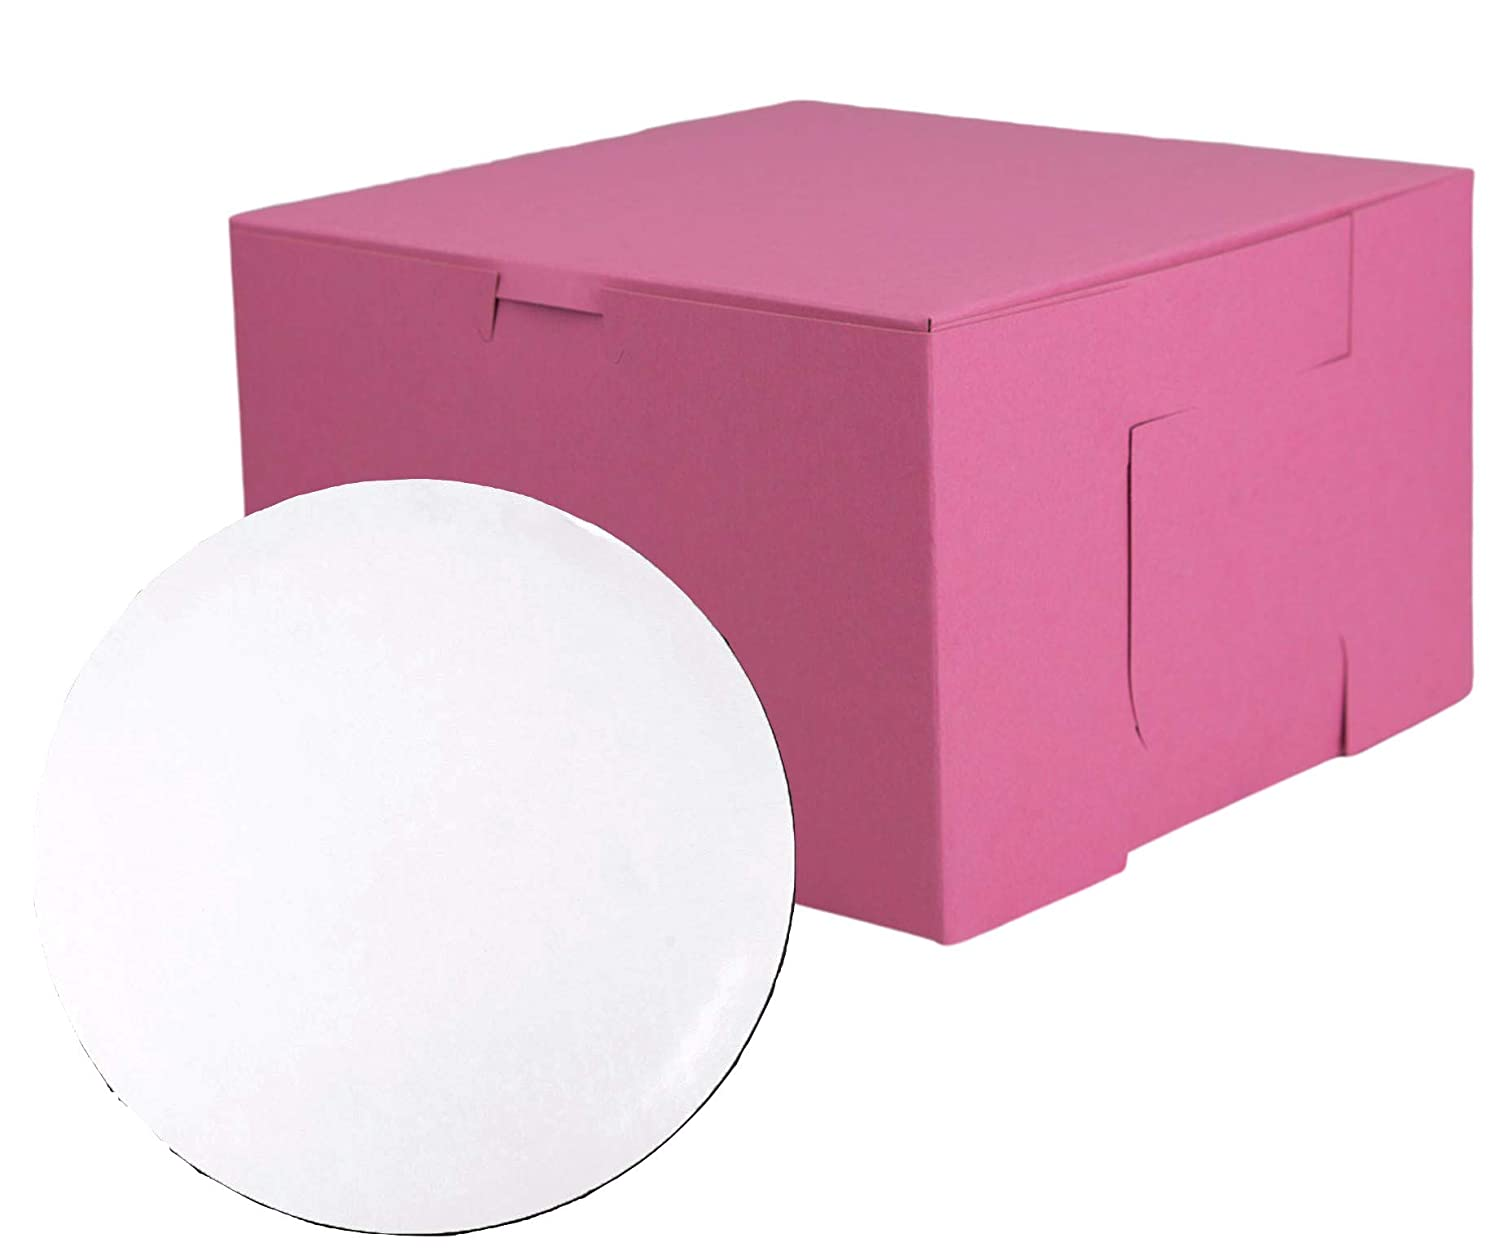 Bakery Boxes and Circles Bundle | Includes 20 8x8x5 Pink Disposable Cake Boxes and 20 8 inch Cardboard Grease Proof White Rounds | Great Container for Cookies Pastry or Cakes